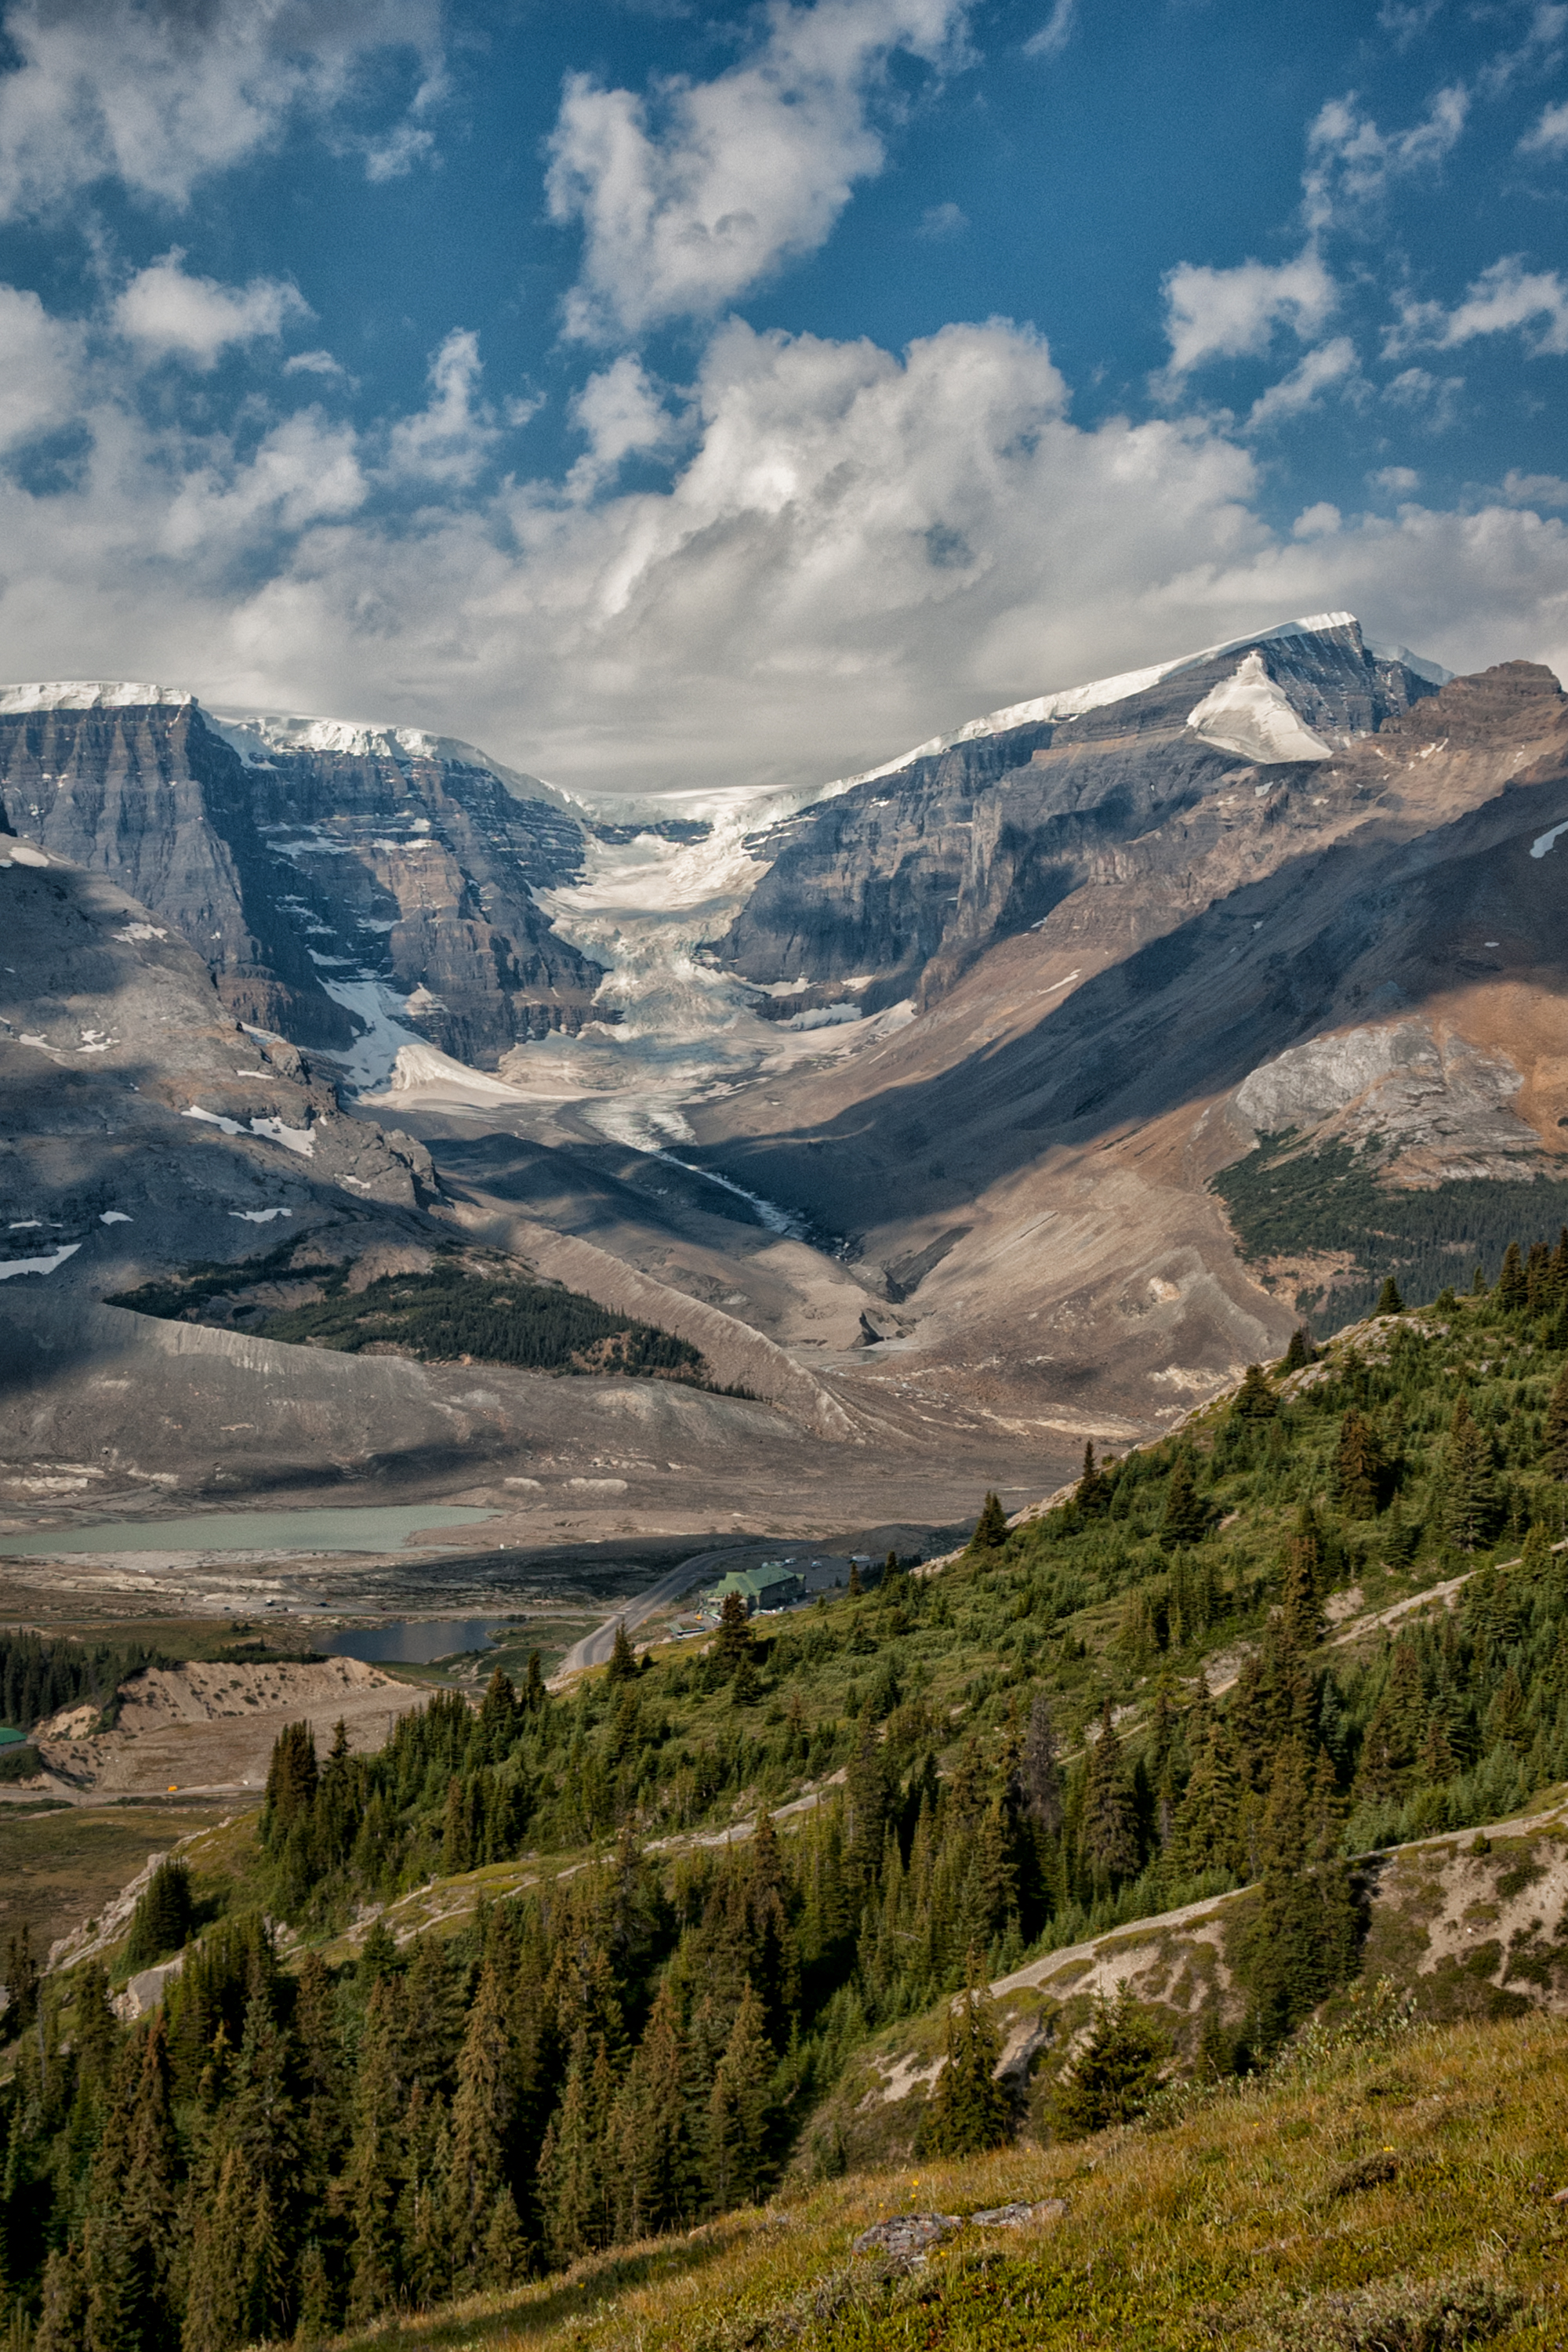 distant glacier author bloy bruce icefield wilco